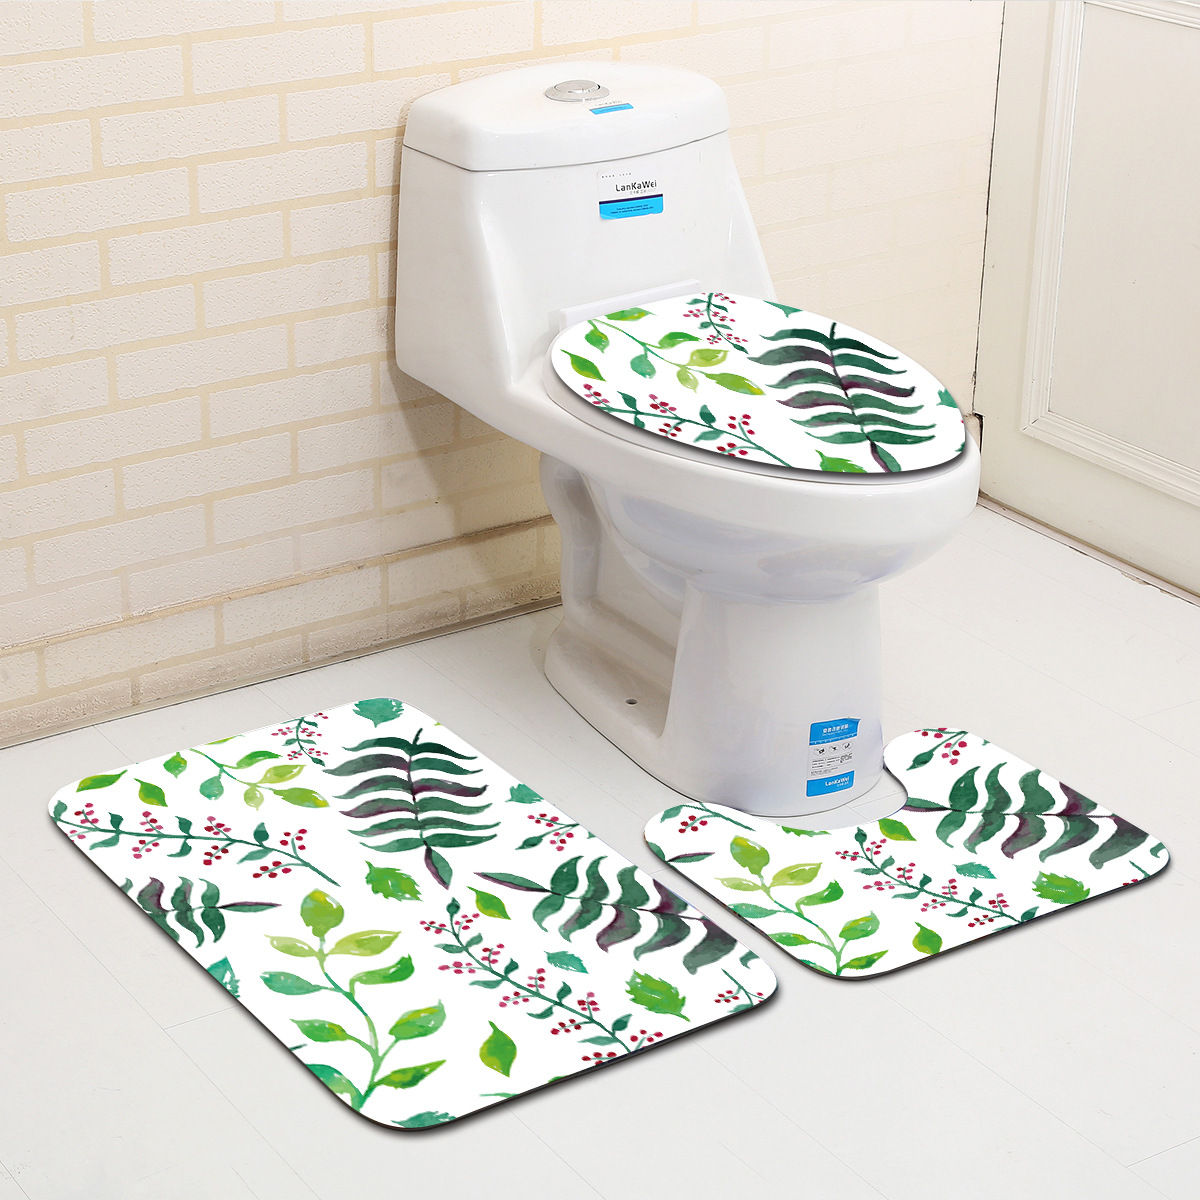 Zeegle Plants Leaf Printed 3Pcs Toilet Rug Set Bathroom Carpets Anti-slip Toilet Floor Rugs Shower Room Mats Bathroom Rugs Set